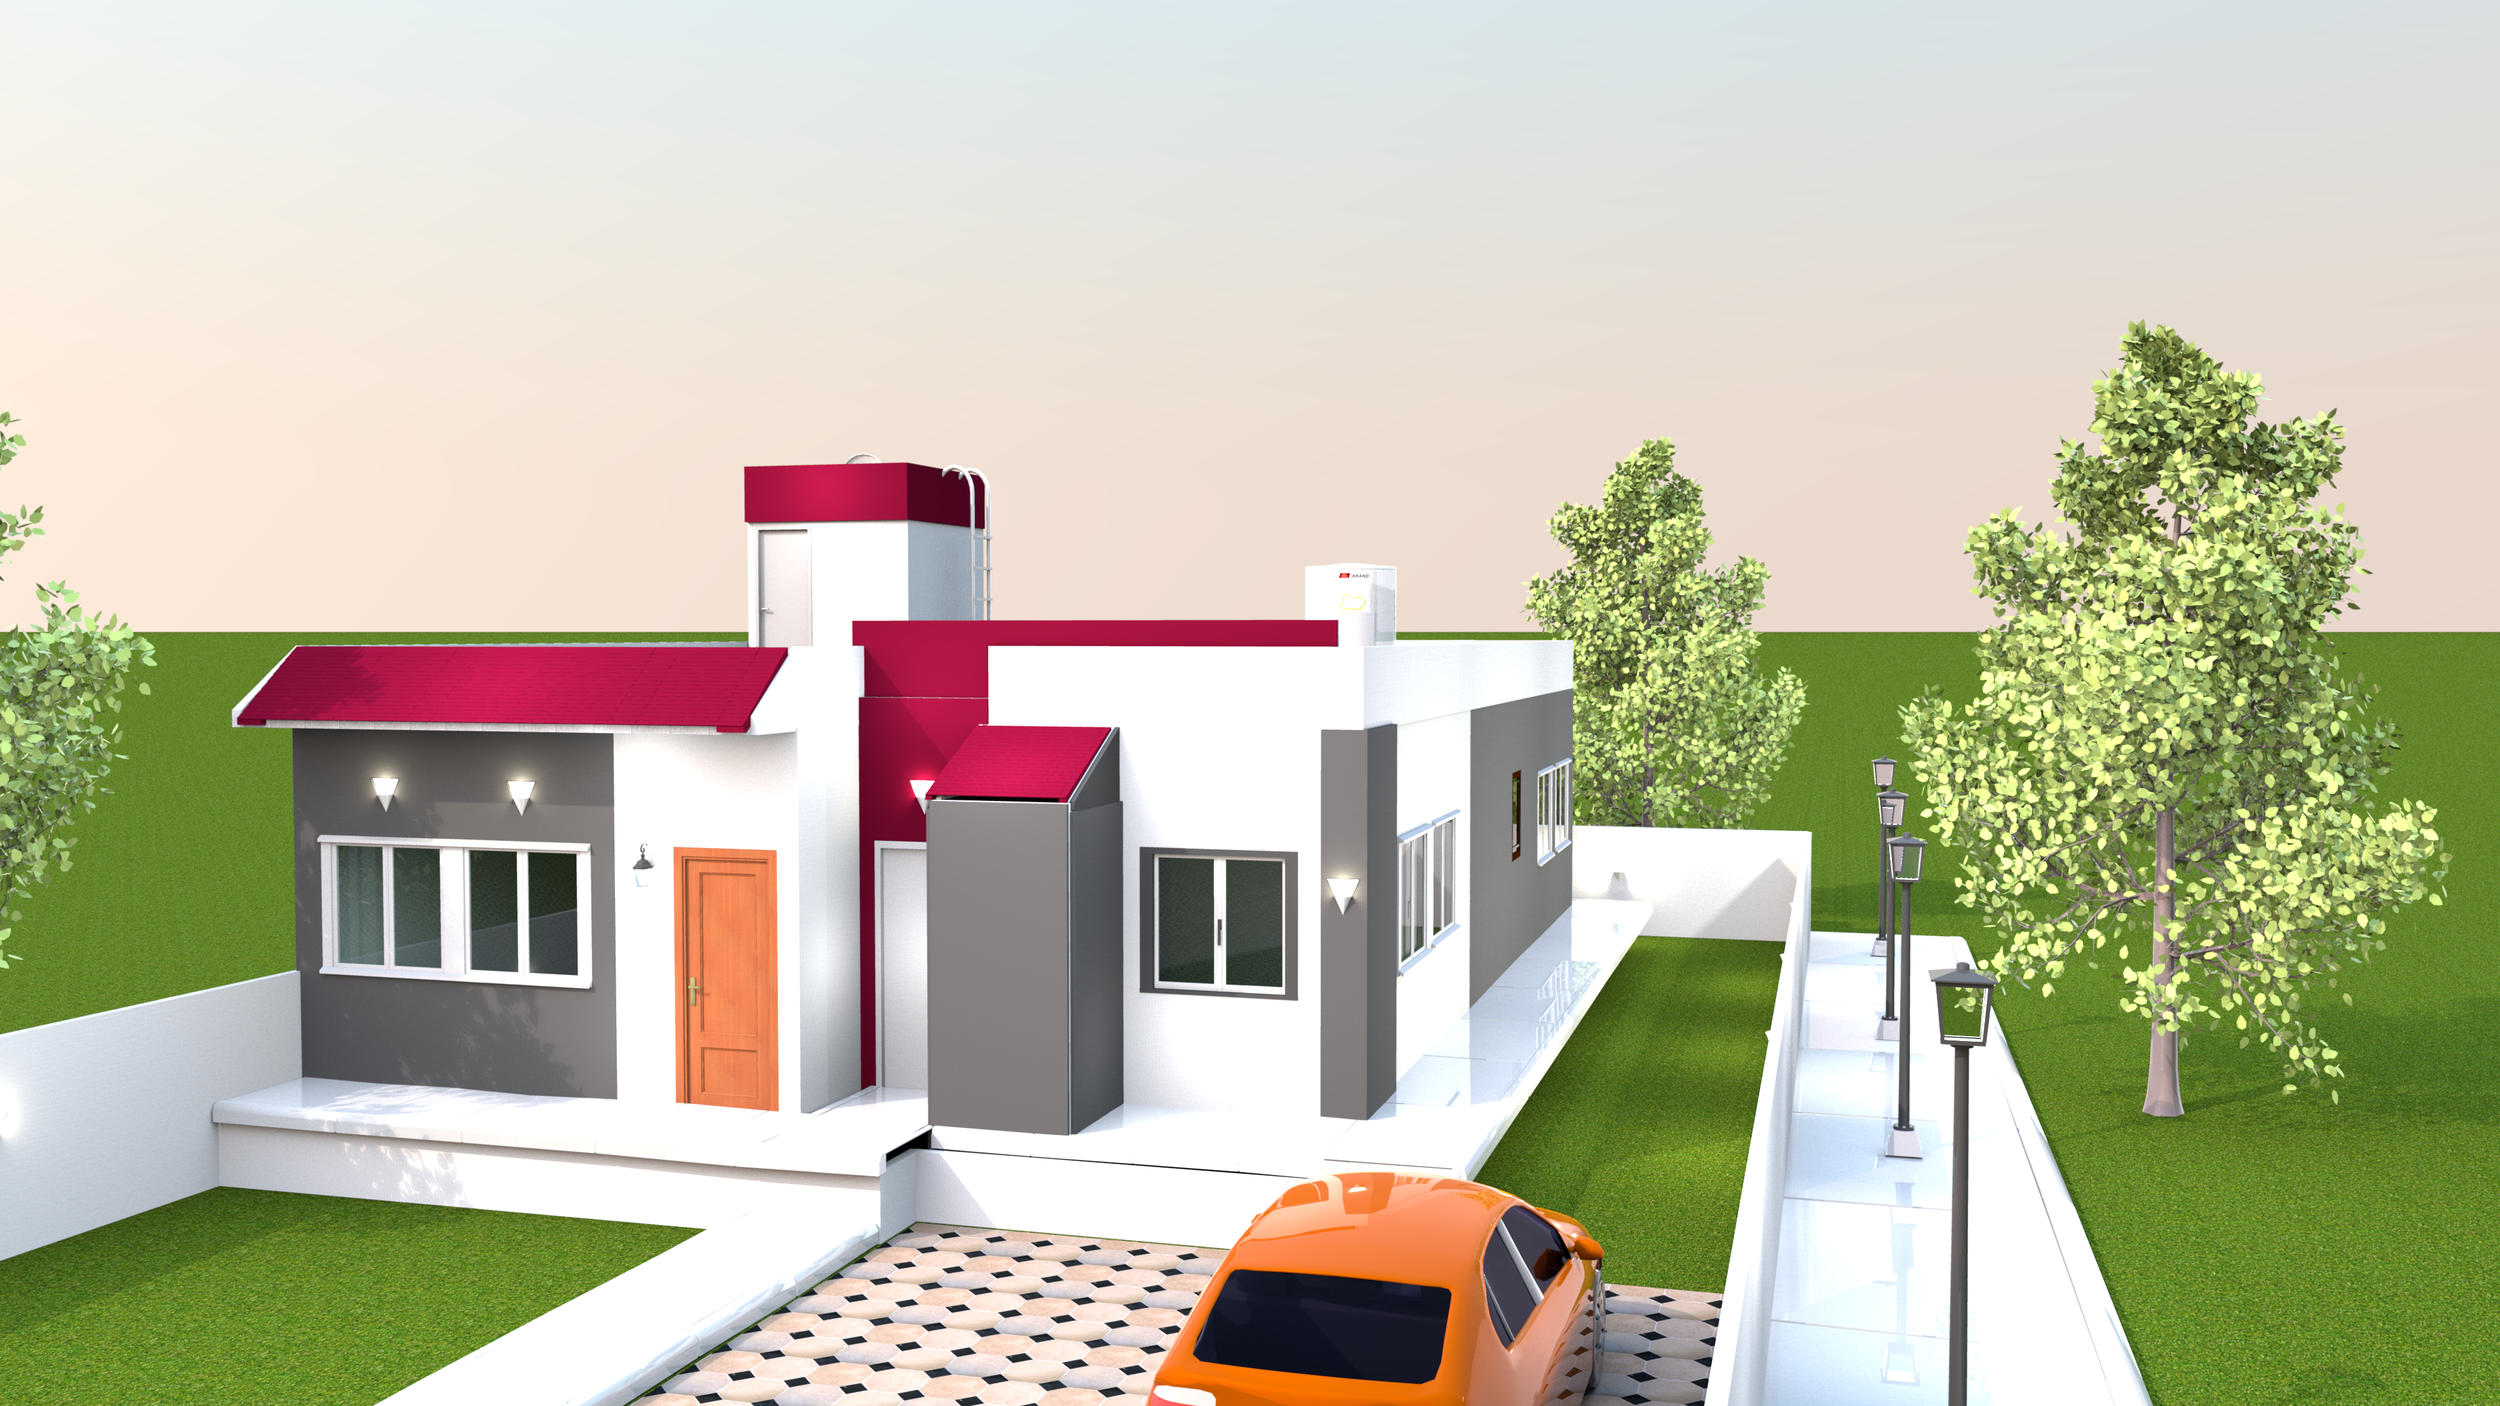 rensered 110sqm_250 with tree.png